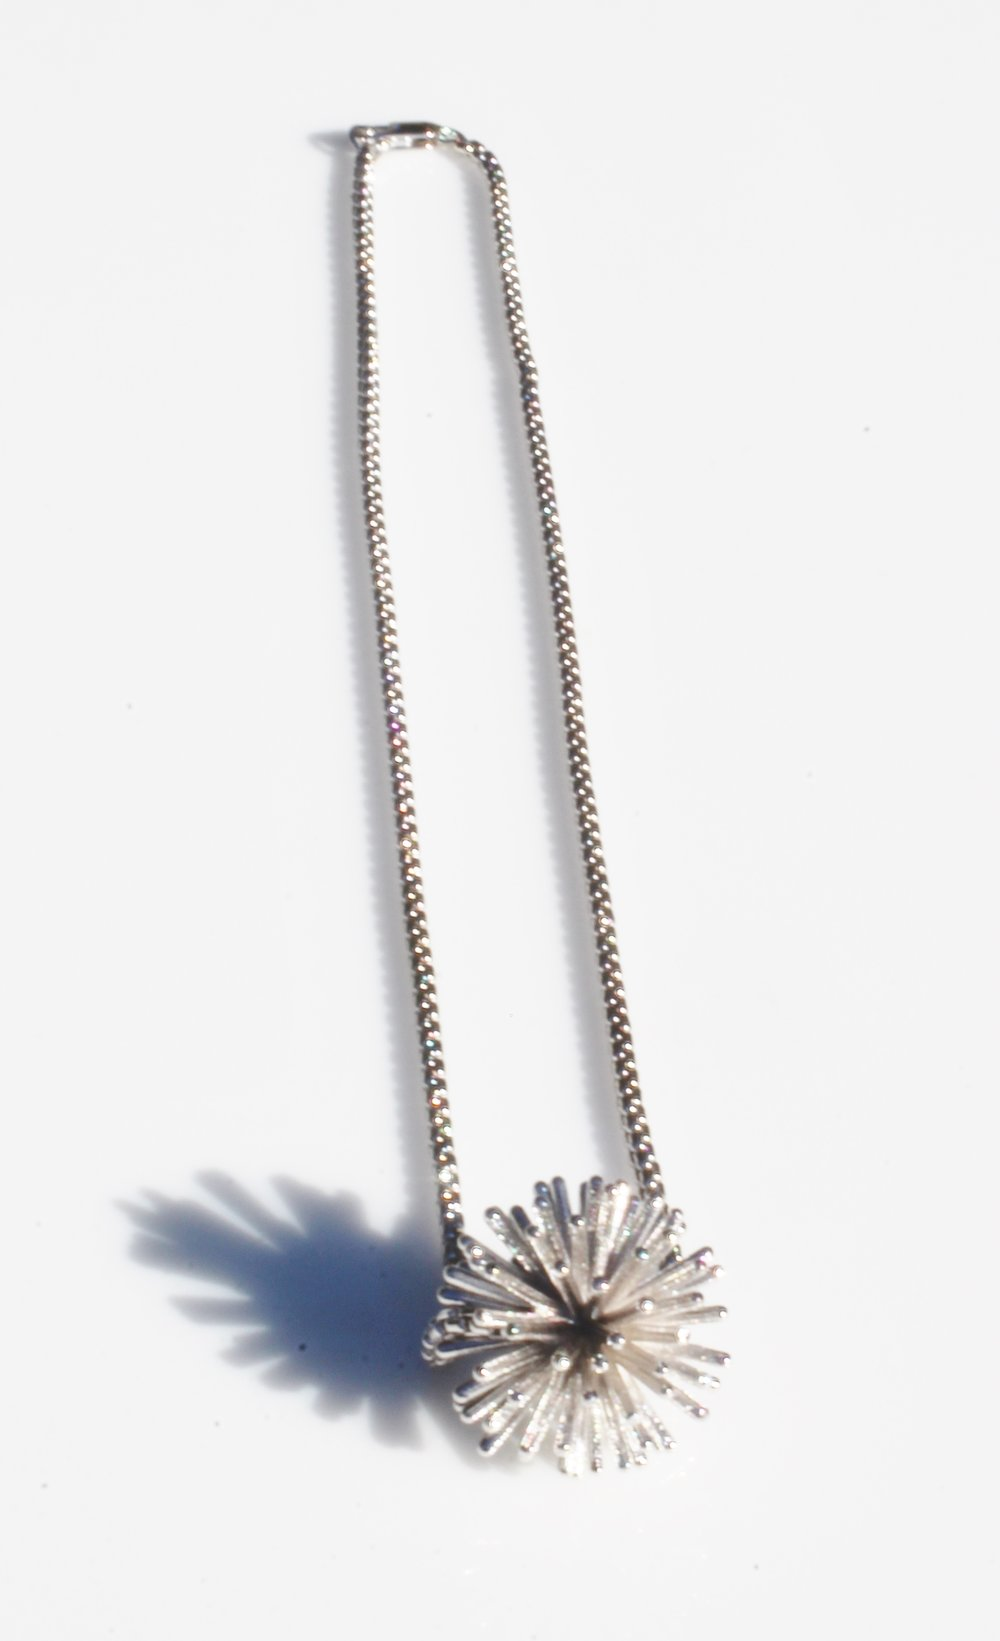 Burst pendant - small